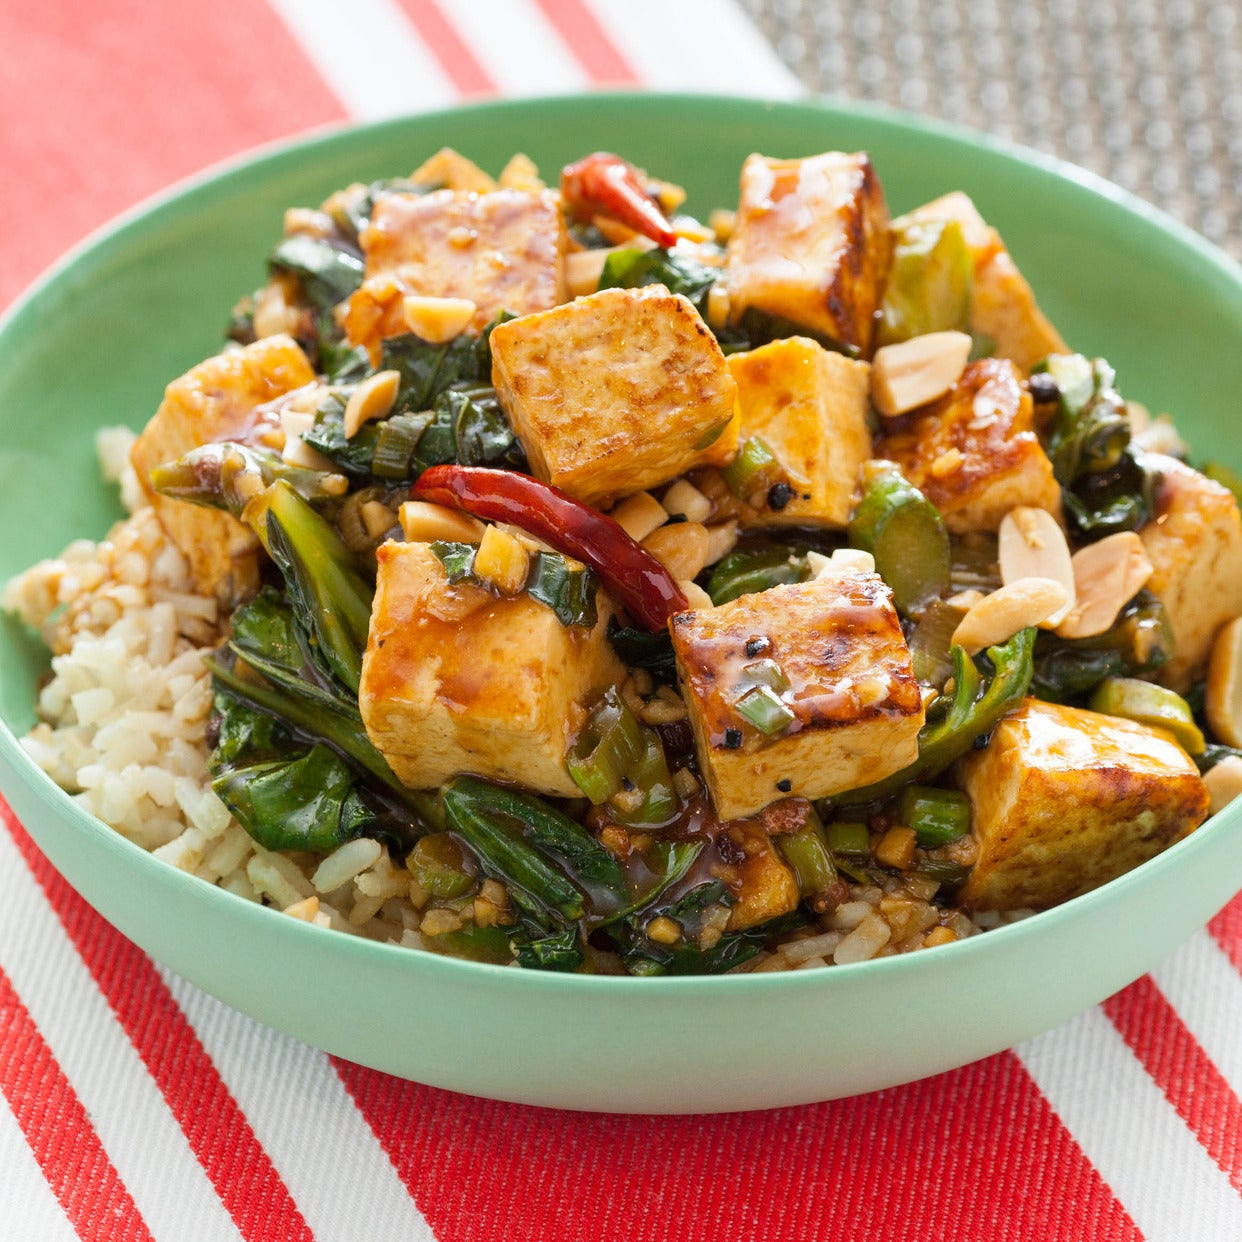 Recipe kung pao tofu with chinese broccoli brown rice blue apron kung pao tofu with chinese broccoli brown rice forumfinder Gallery